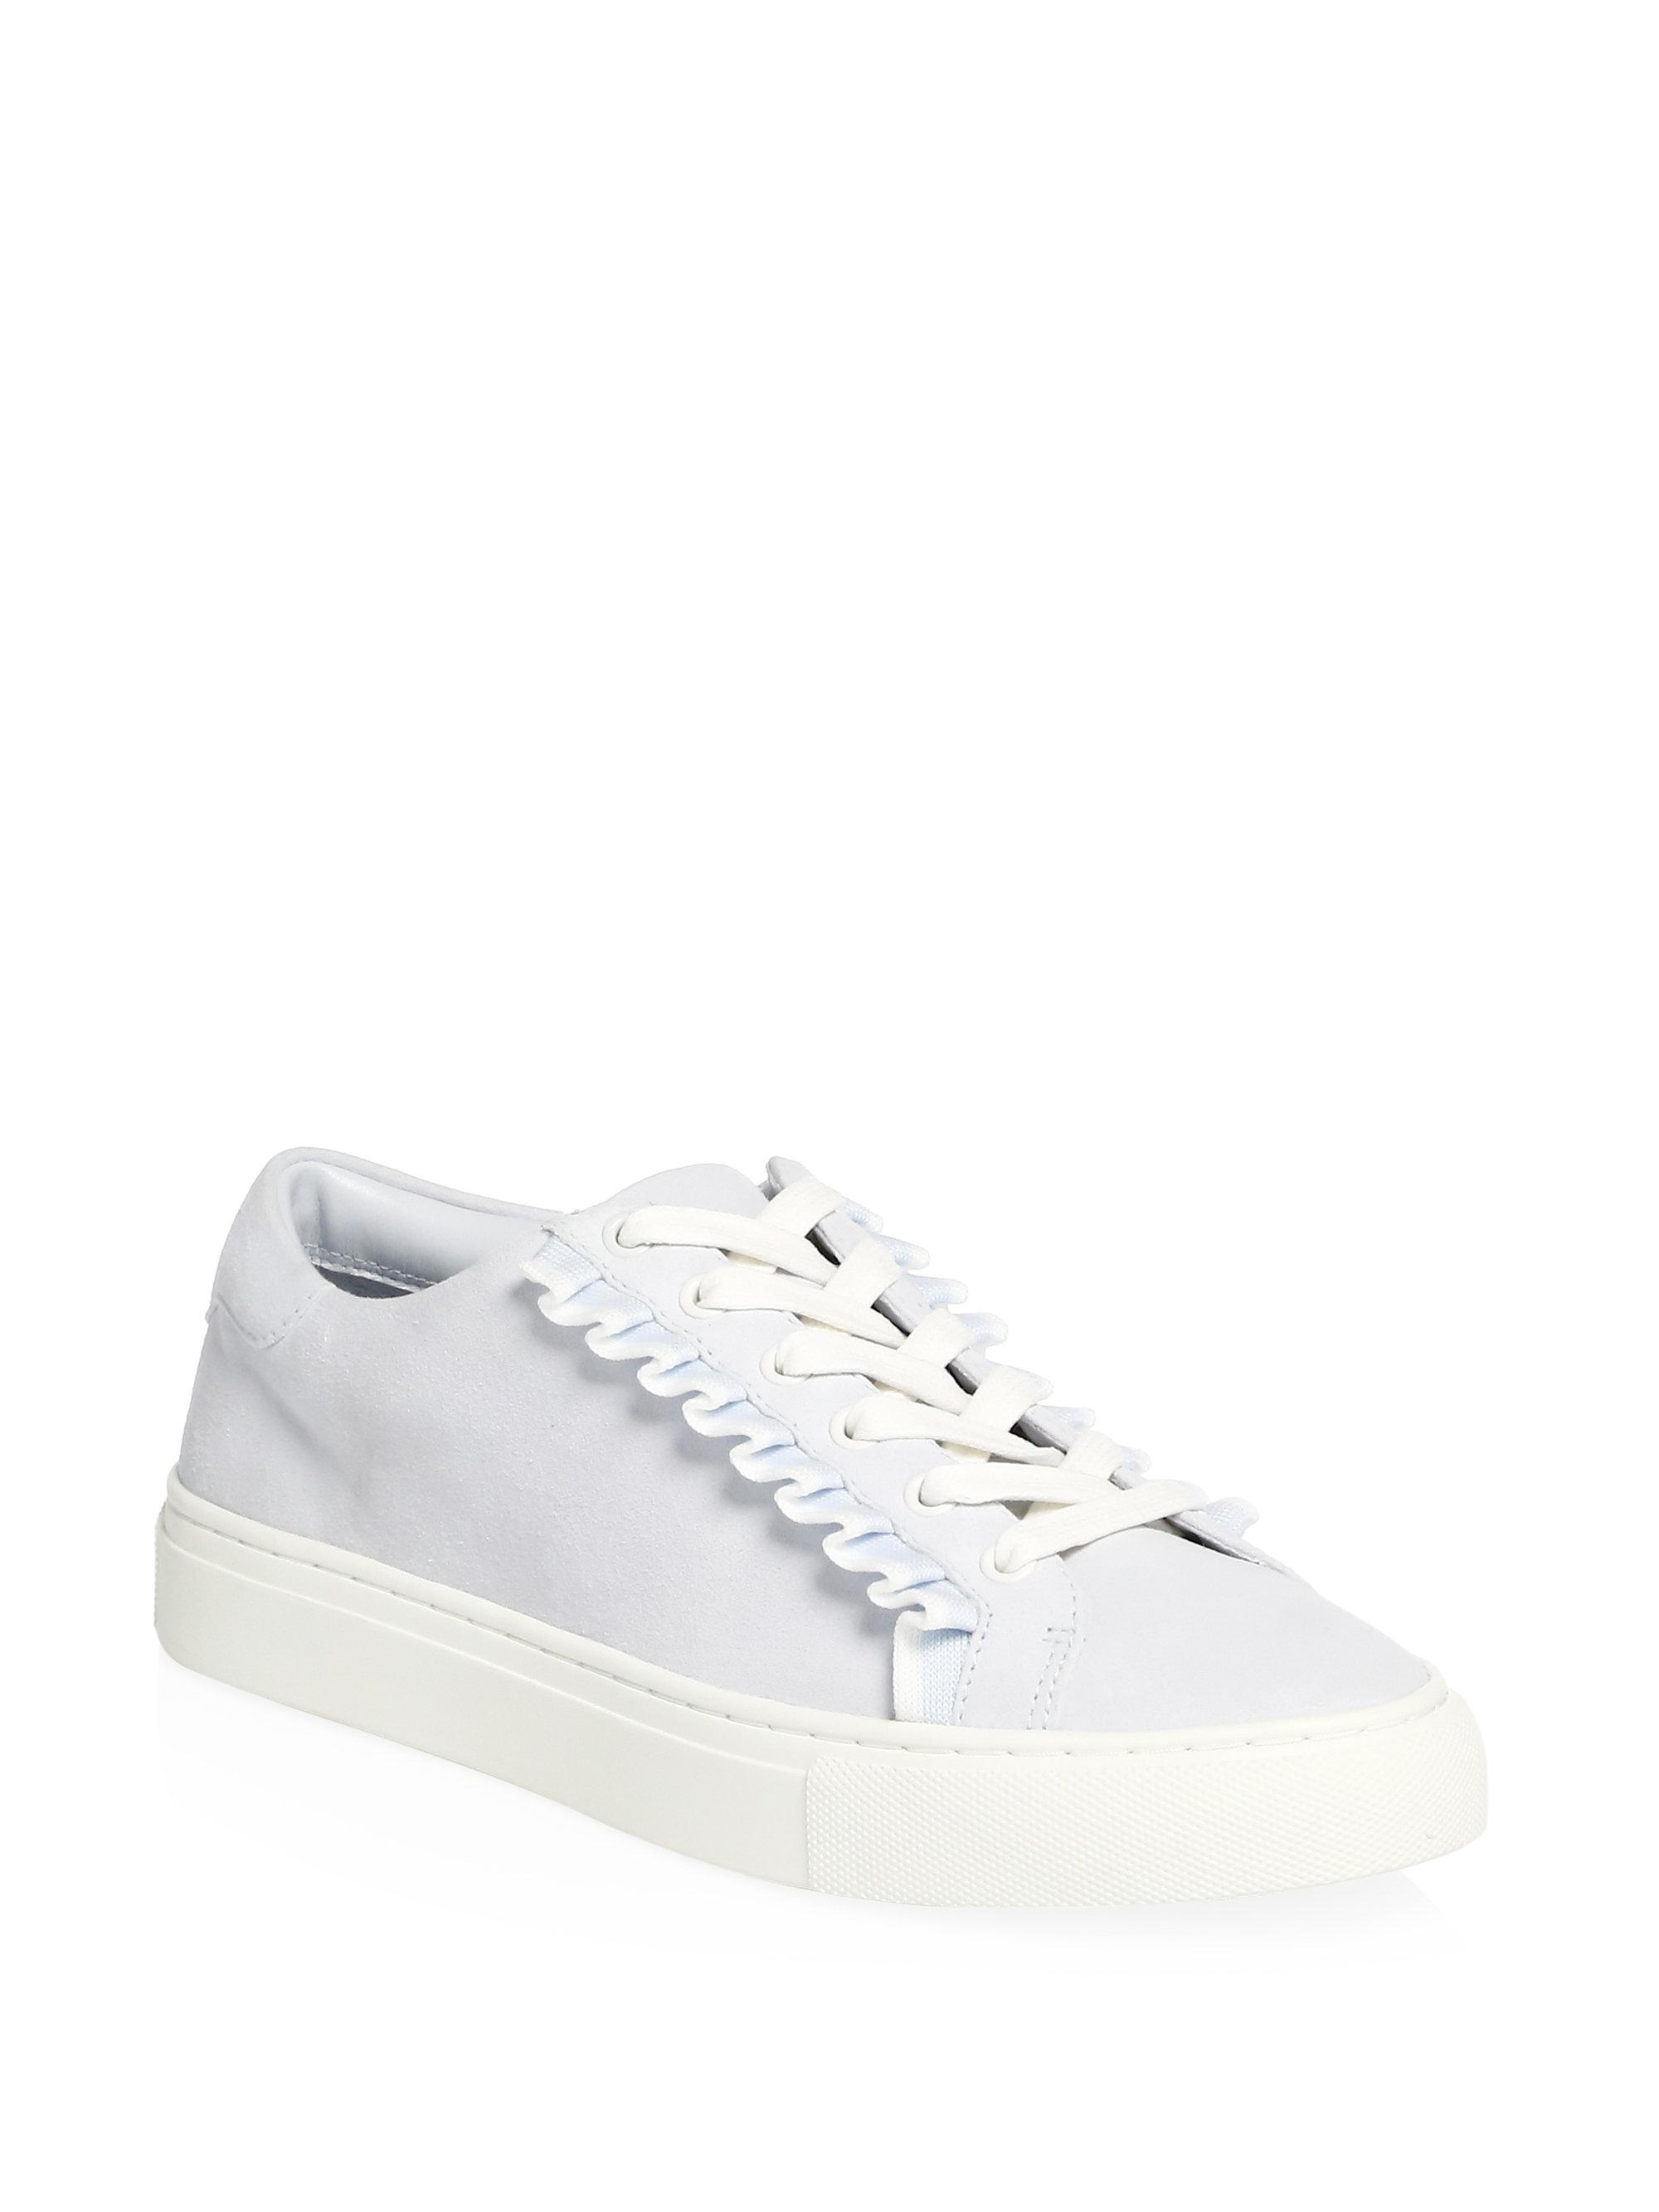 Tory Burch Ruffle Low-Top Sneakers sale wholesale price low shipping fee genuine cheap price discount new wholesale price for sale TPKjSu9lCb